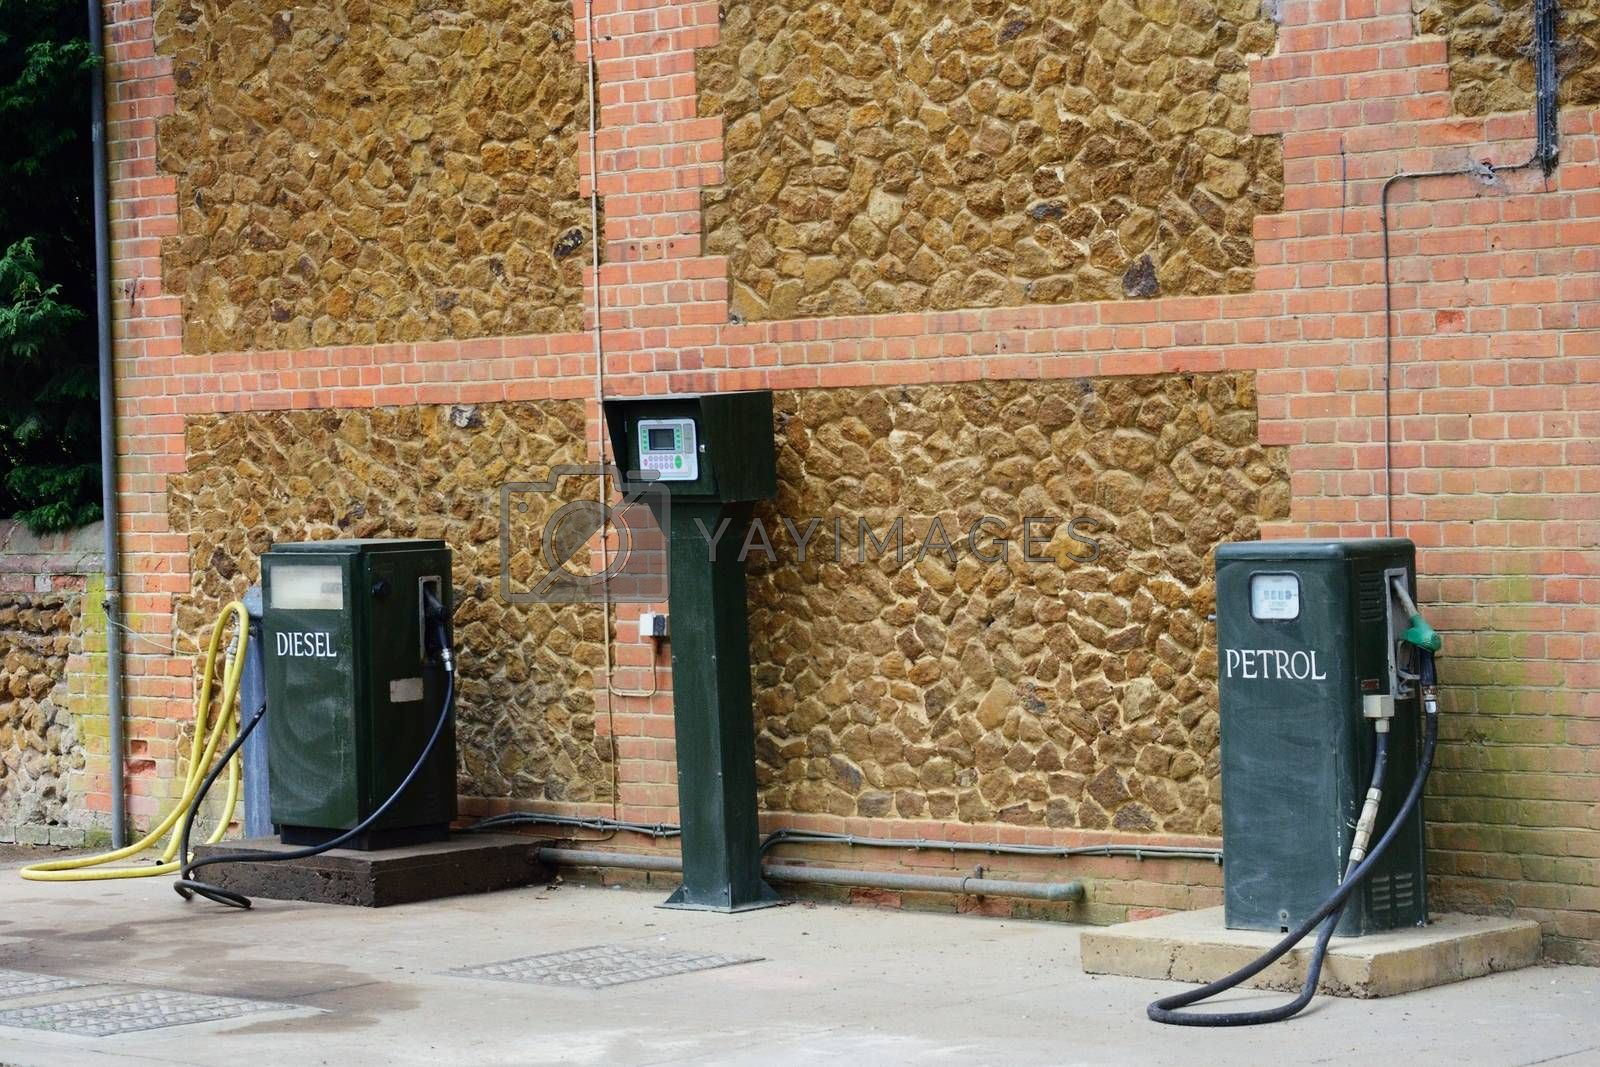 Vintage green Petrol and Diesel pumps